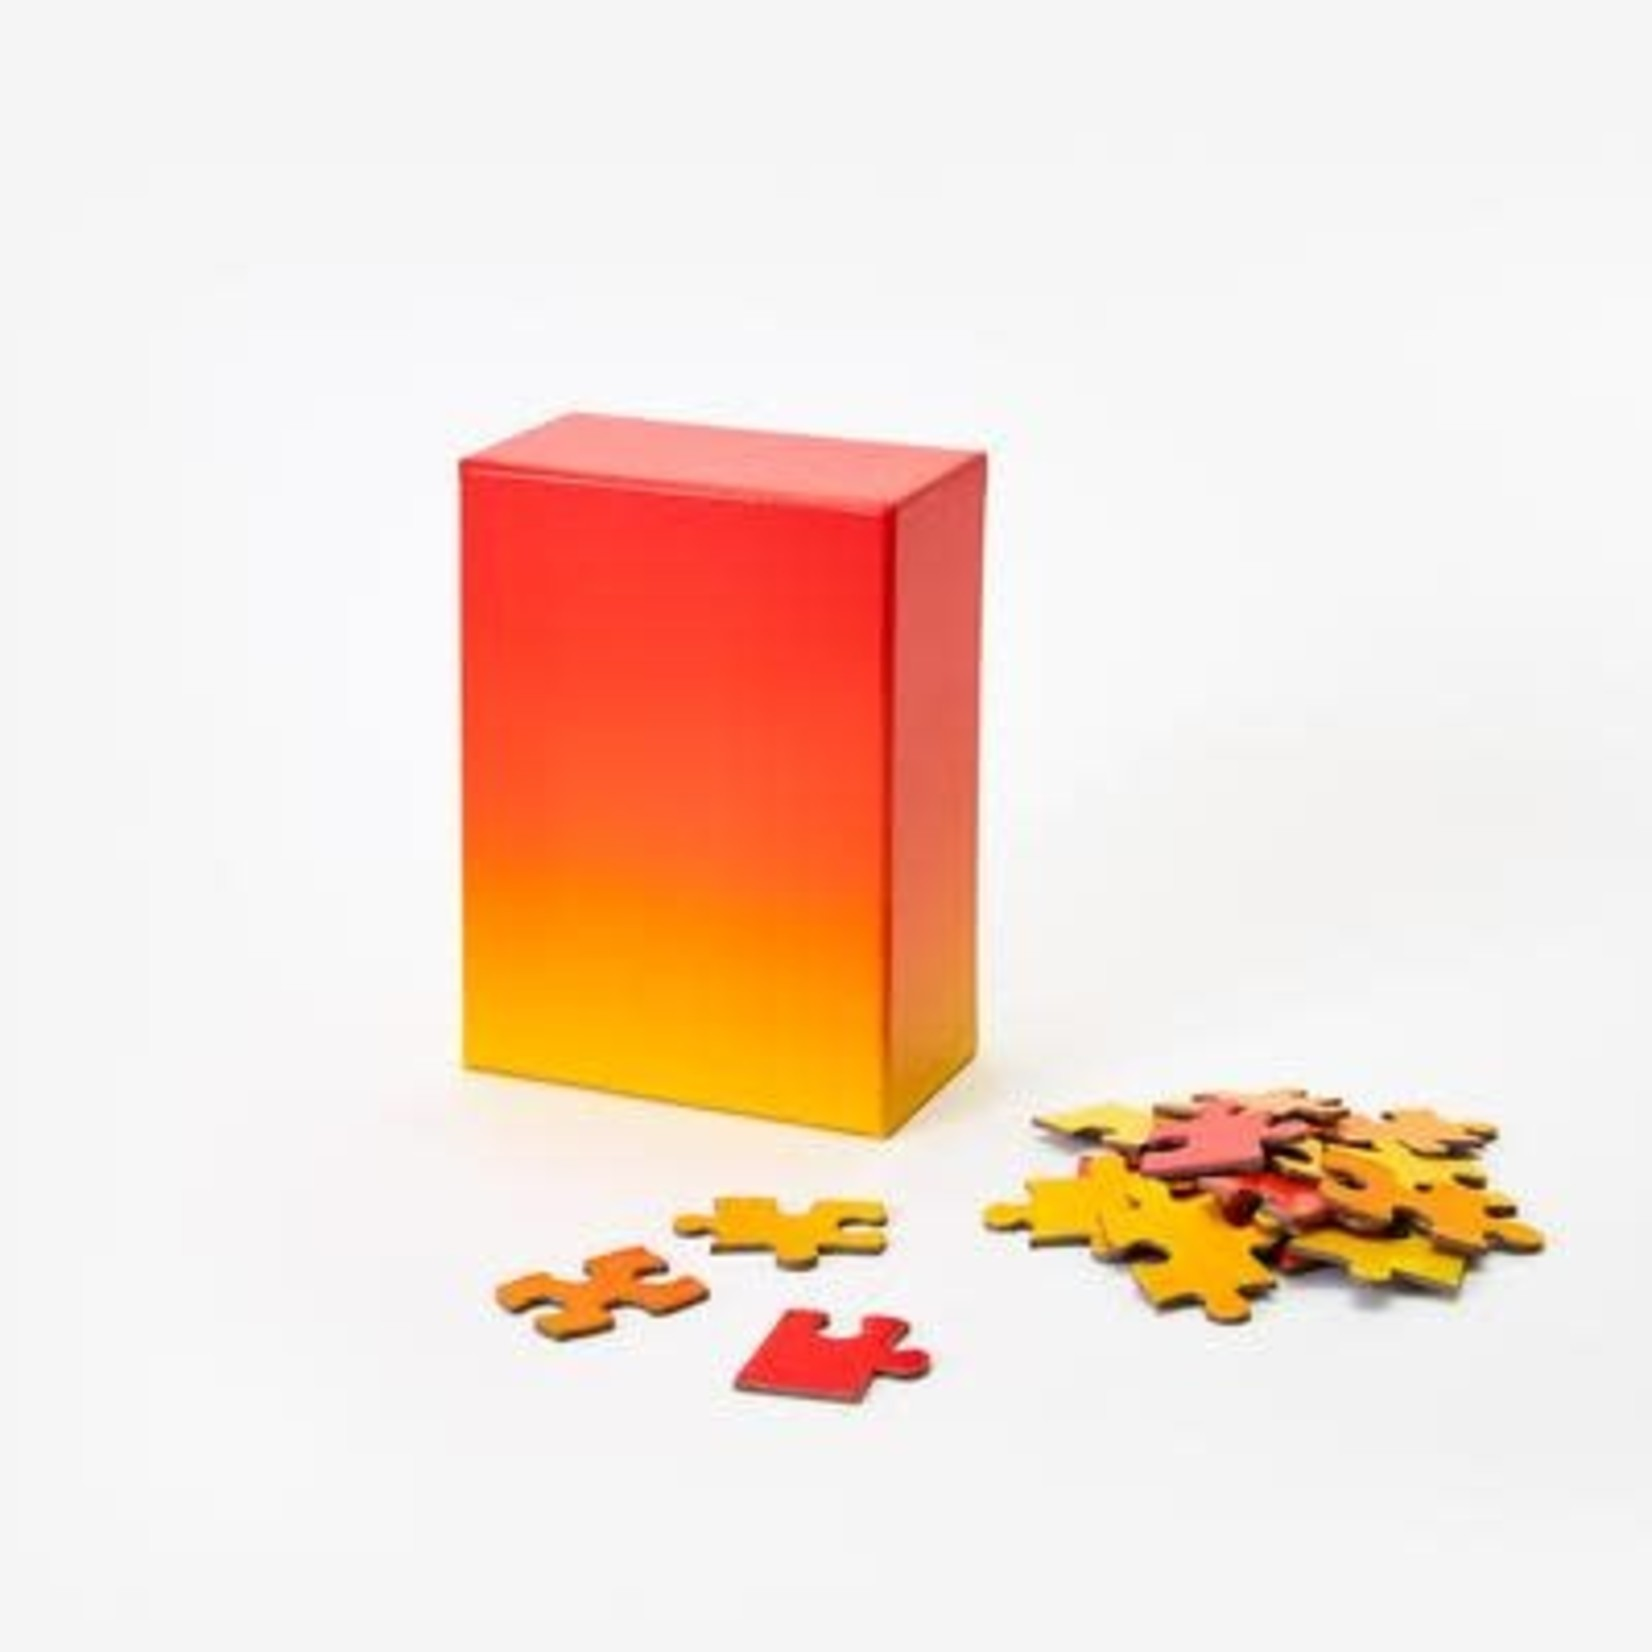 Areaware Areaware Gradient Puzzle Small Red/Yellow